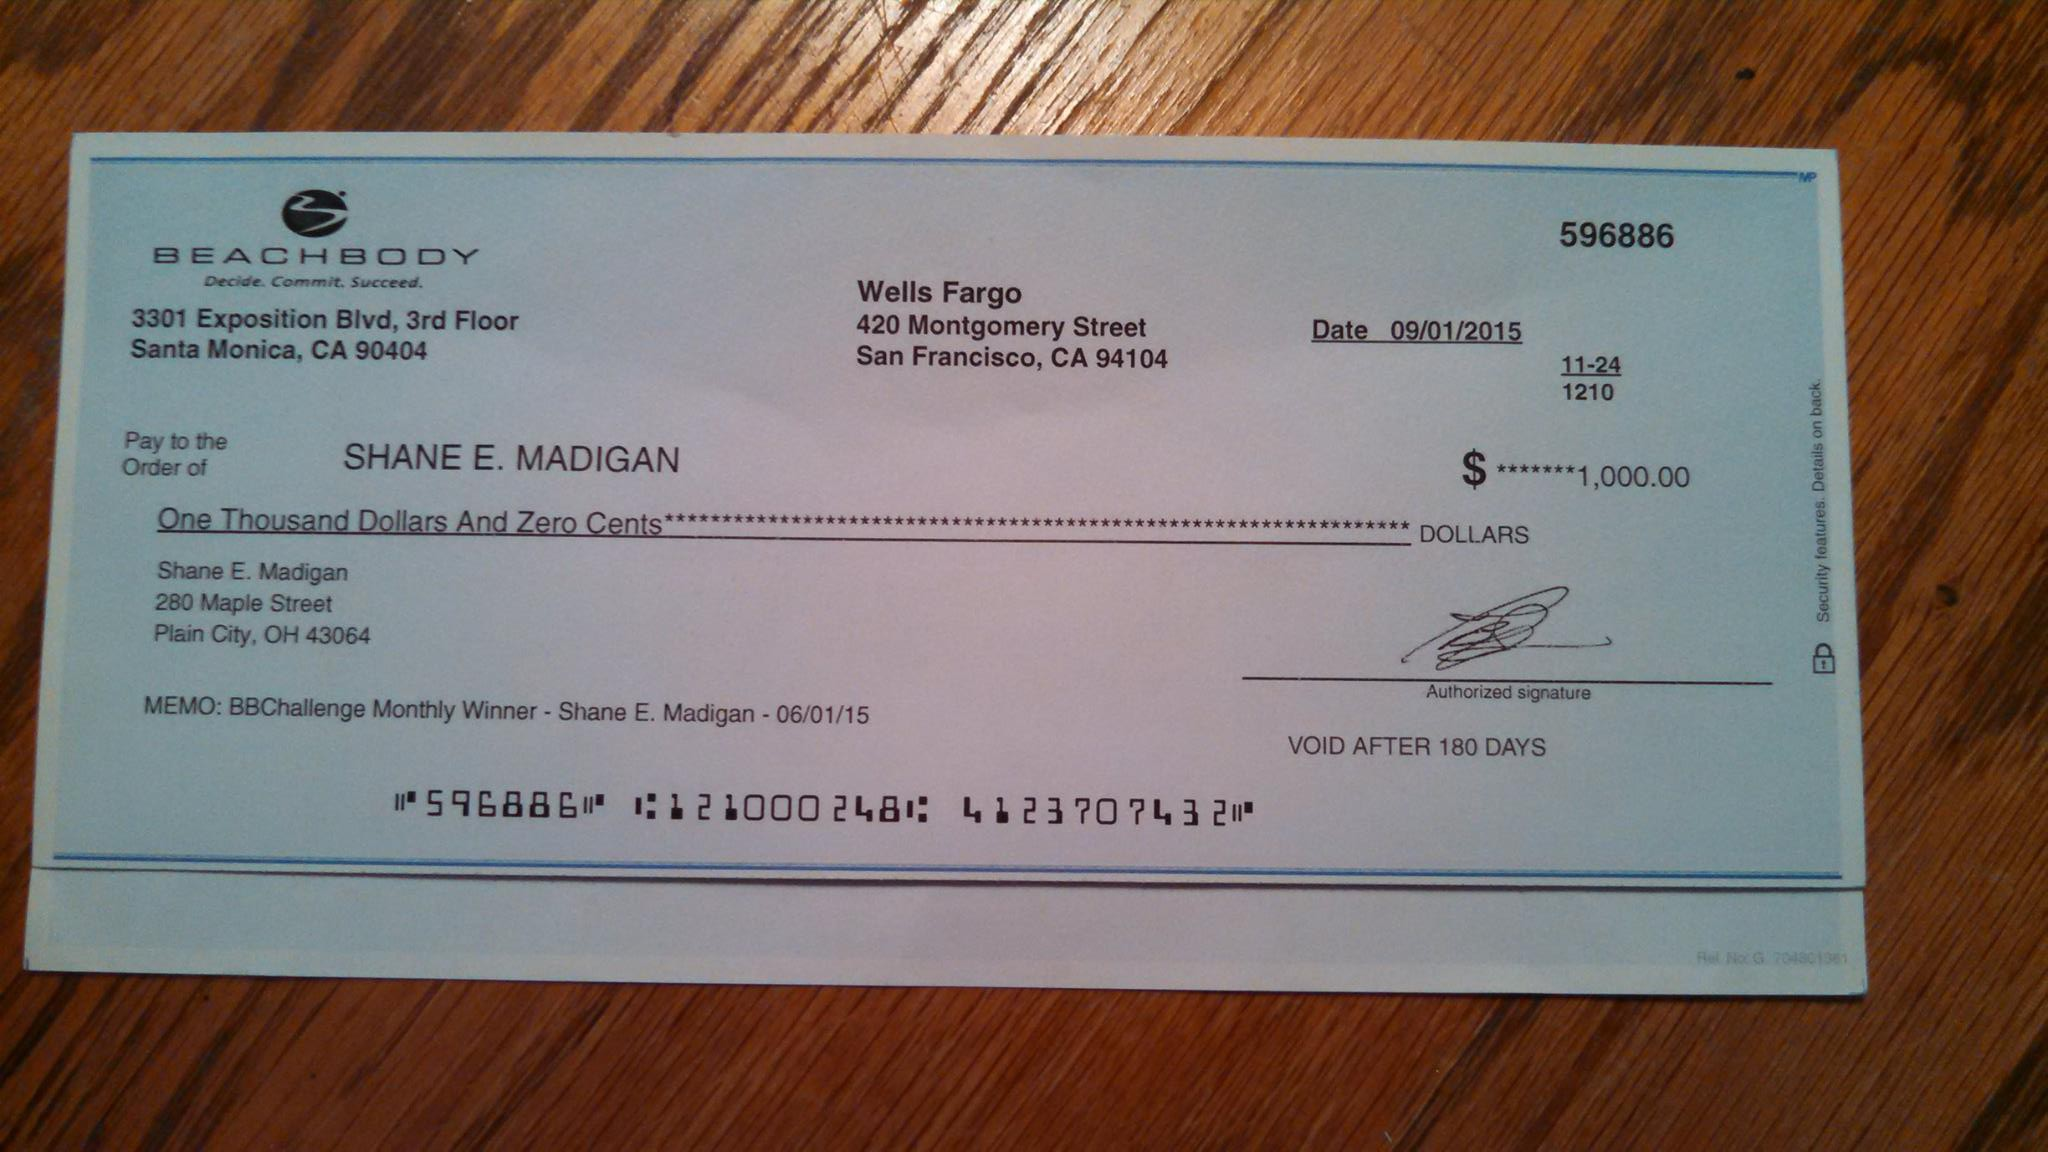 Shane Won $1,000 Through The Beachbody Challenge Endorse A Check